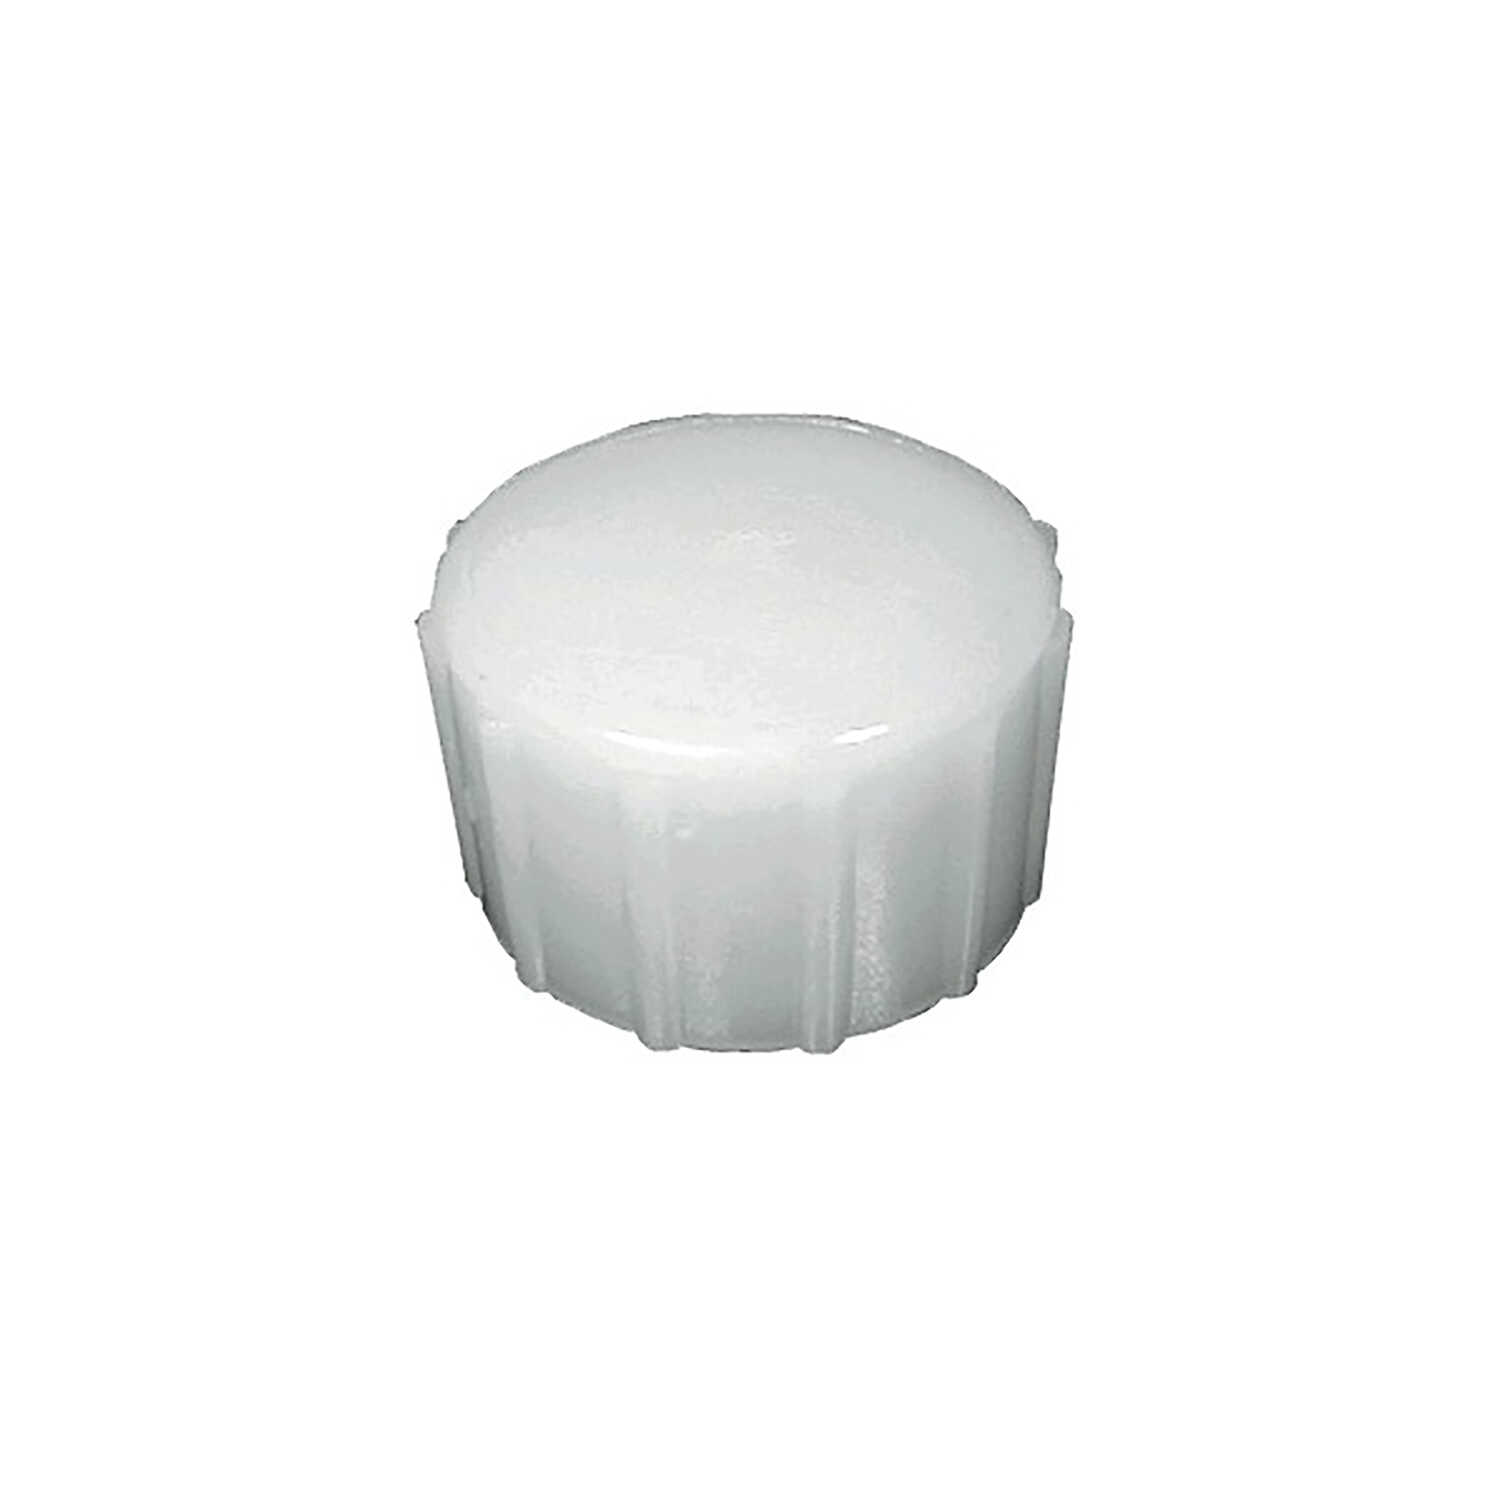 Green Leaf  Nylon  3/4 in. Dia. x 3/4 in. Dia. Hose Cap  1 pk